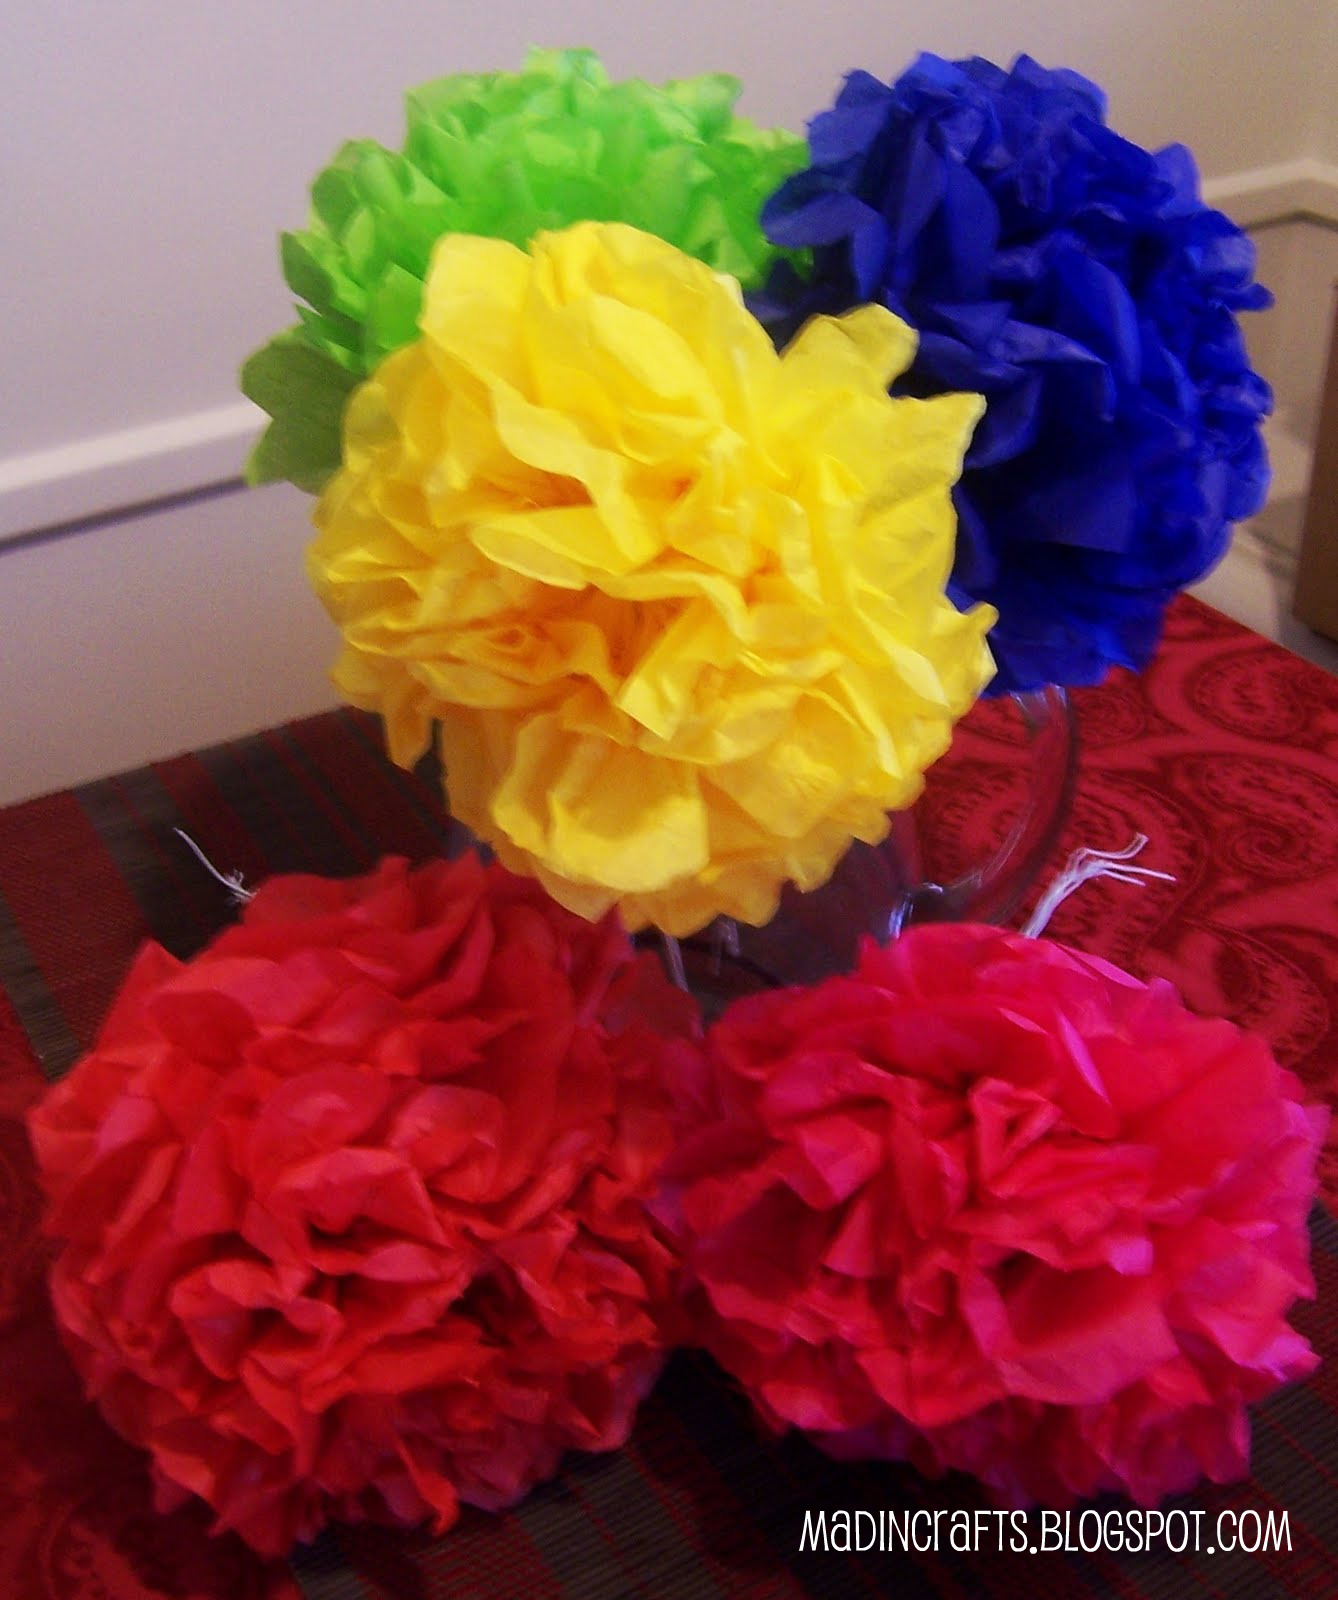 To make Mexican Paper Flowers, you will need: